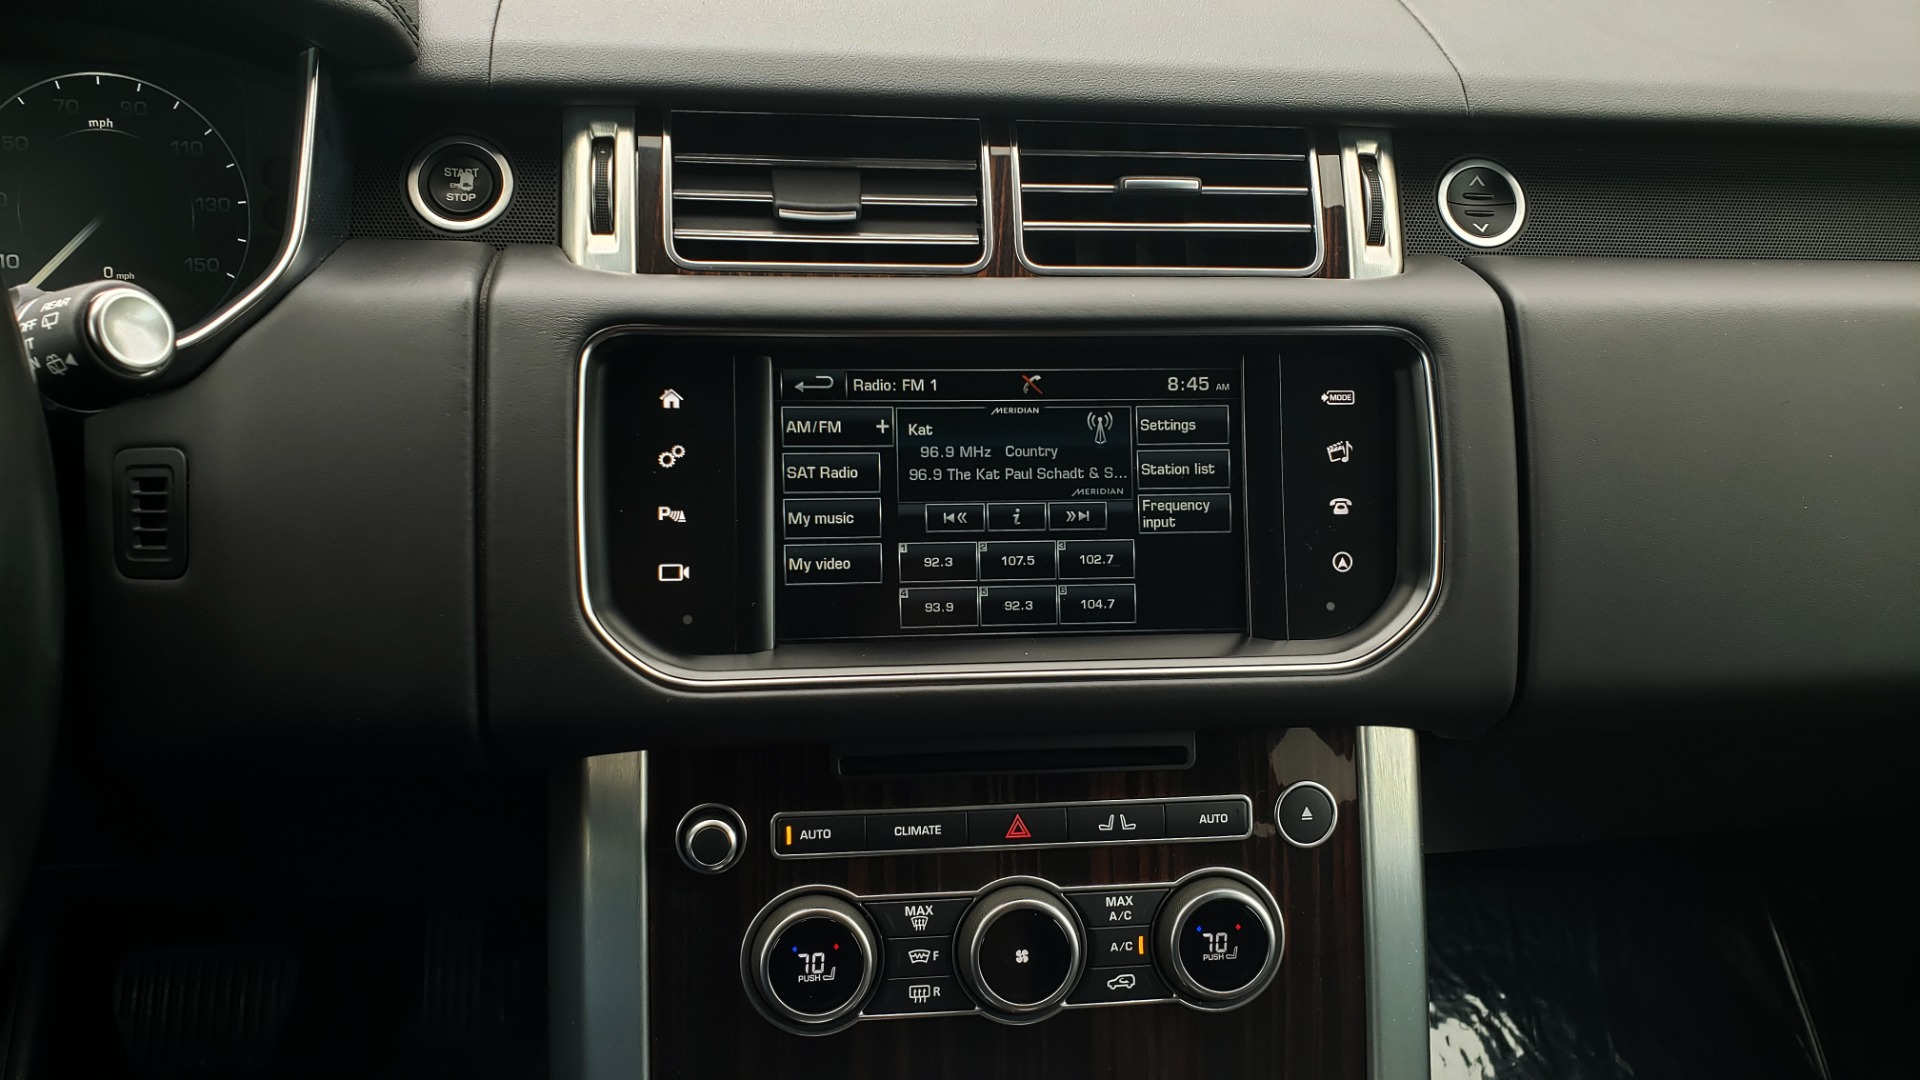 Used 2016 Land Rover Range Rover HSE 3.0L SC V6 / NAV / PANO-ROOF / VENT SEATS / REARVIEW / BLIND SPOT for sale Sold at Formula Imports in Charlotte NC 28227 47